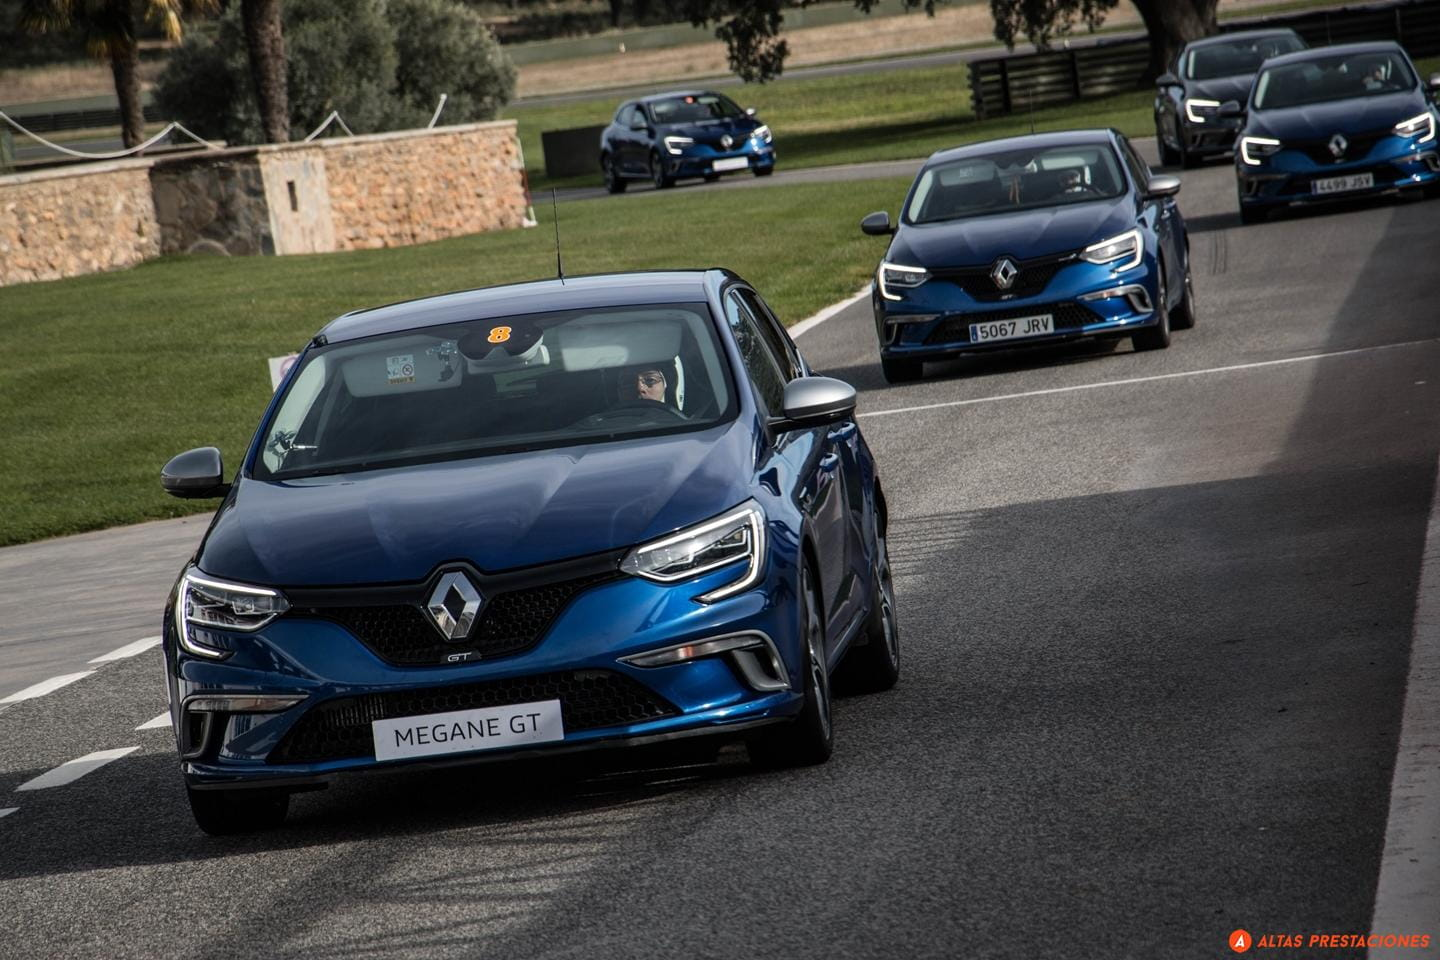 renault-sport-clio-trophy-cup-ascari-020-mapdm